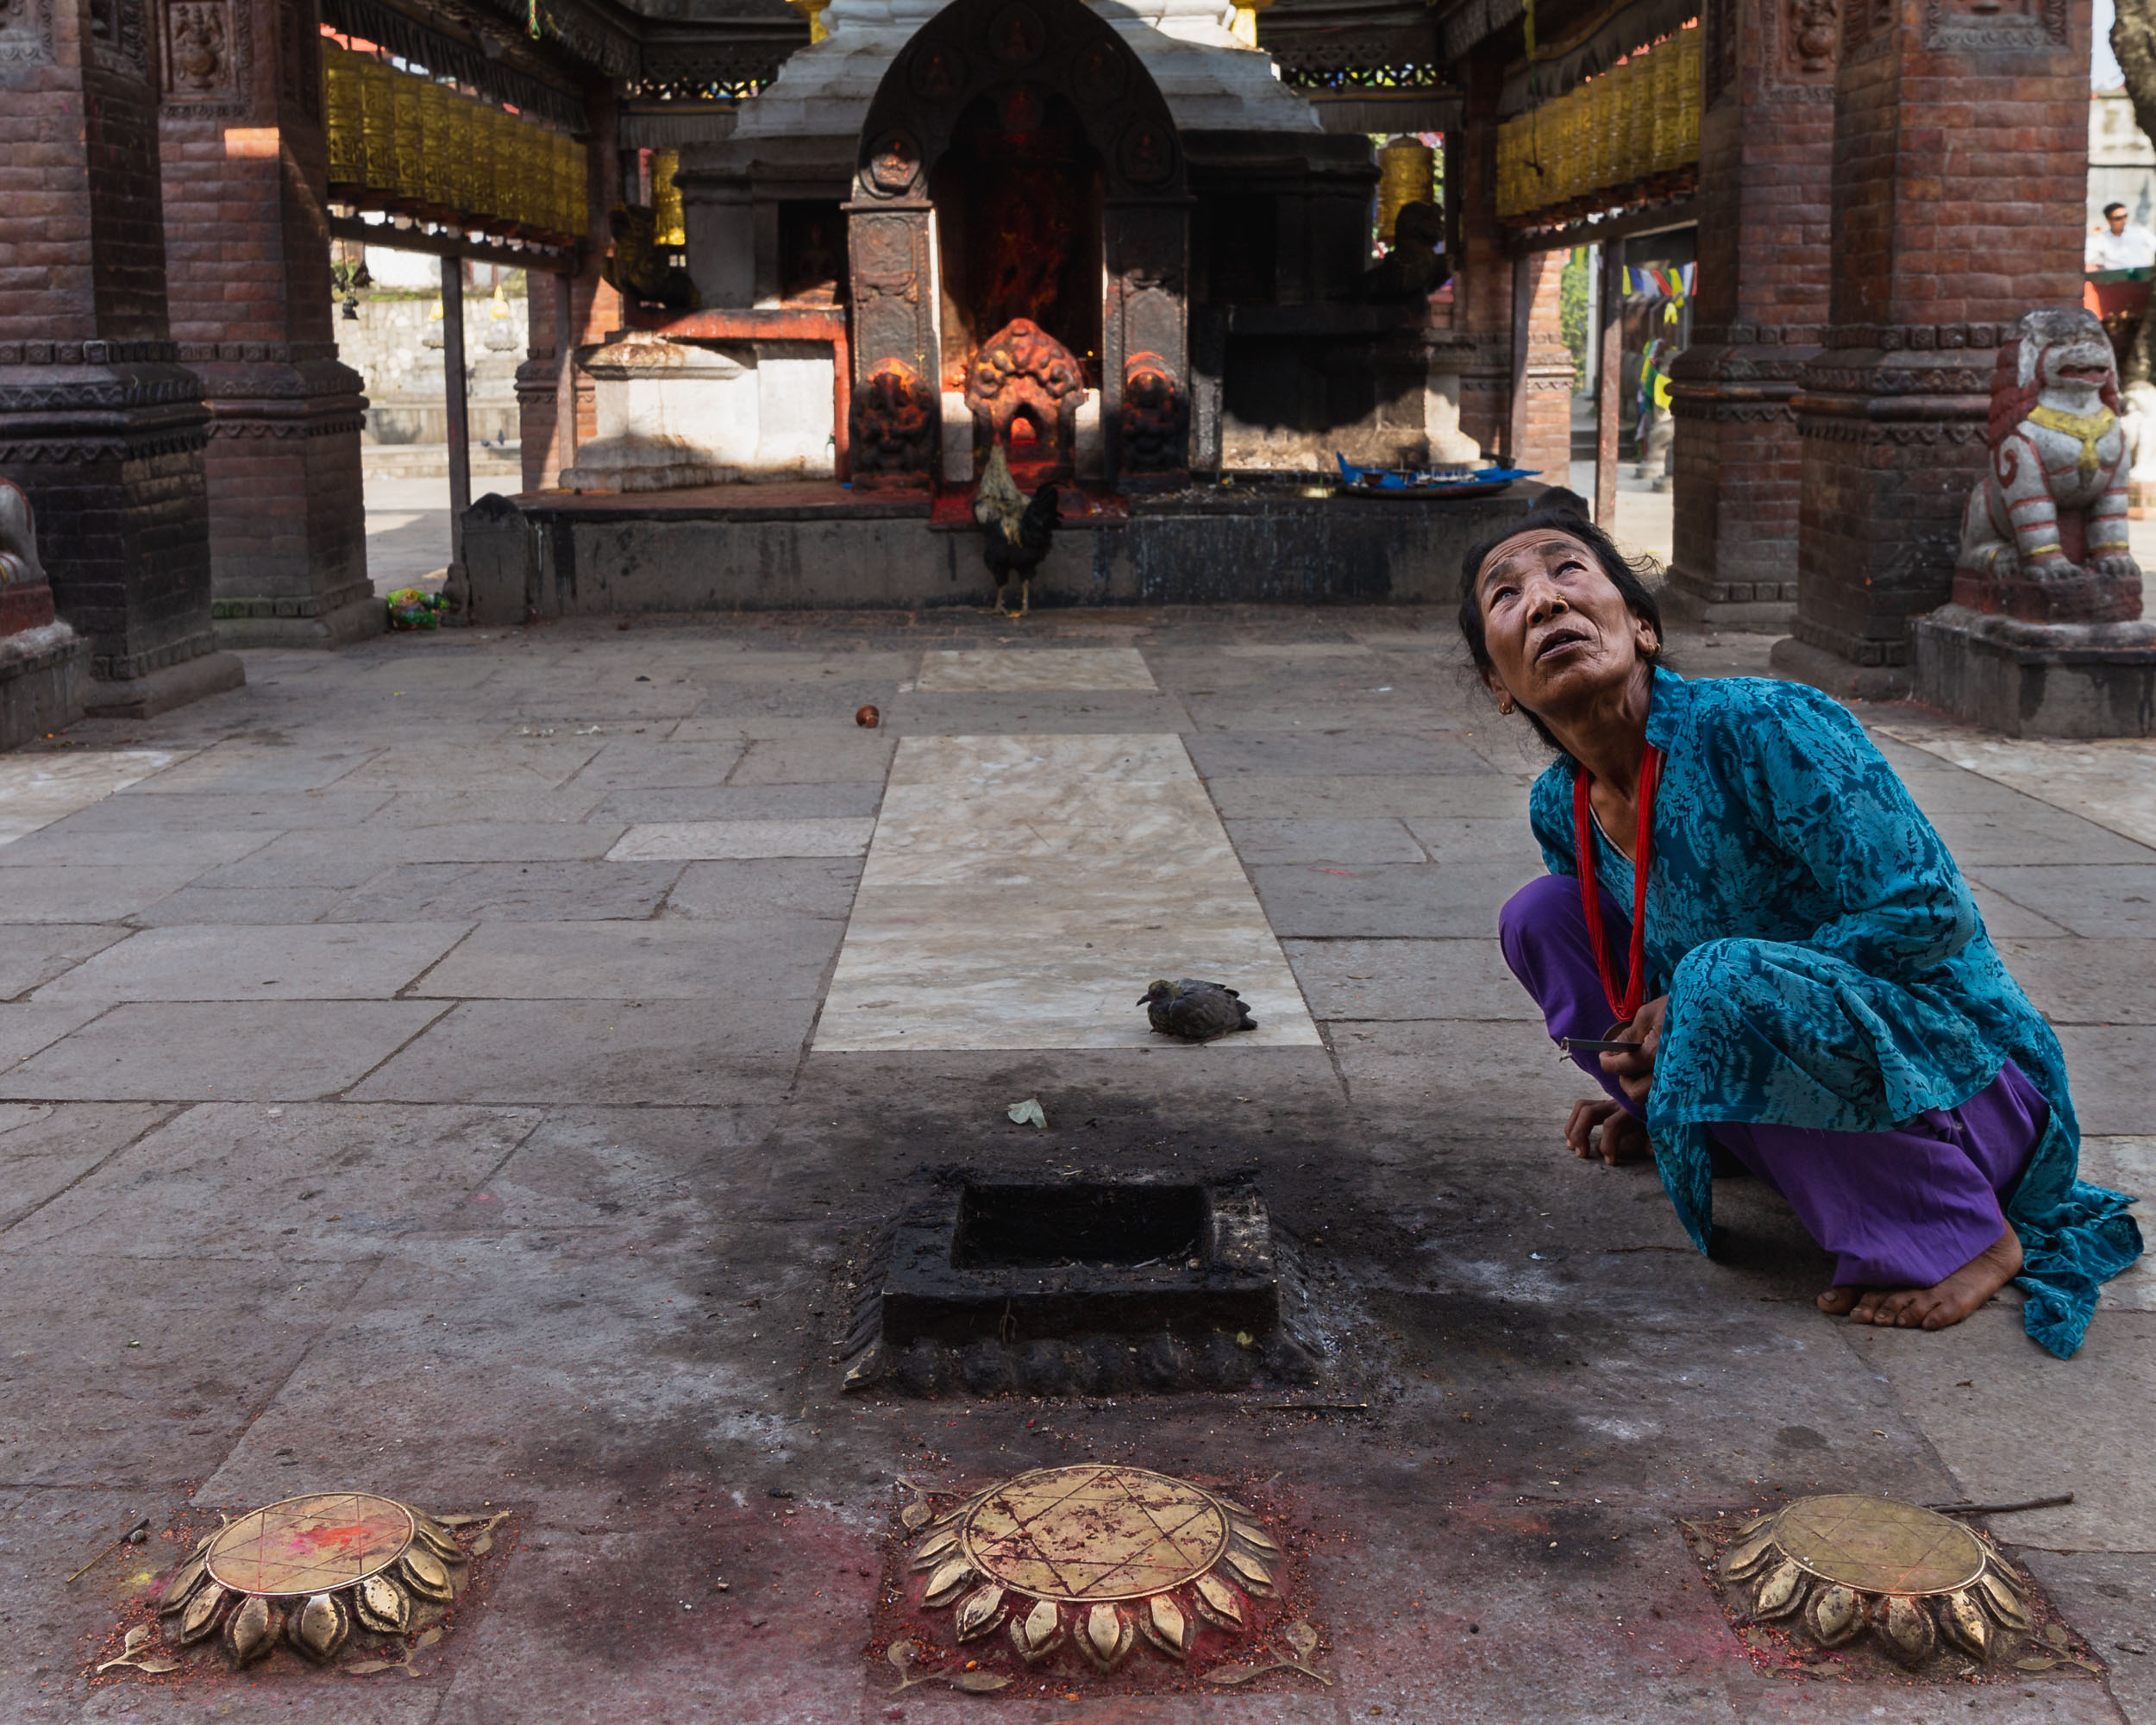 Tibetan lady crouches curiously.